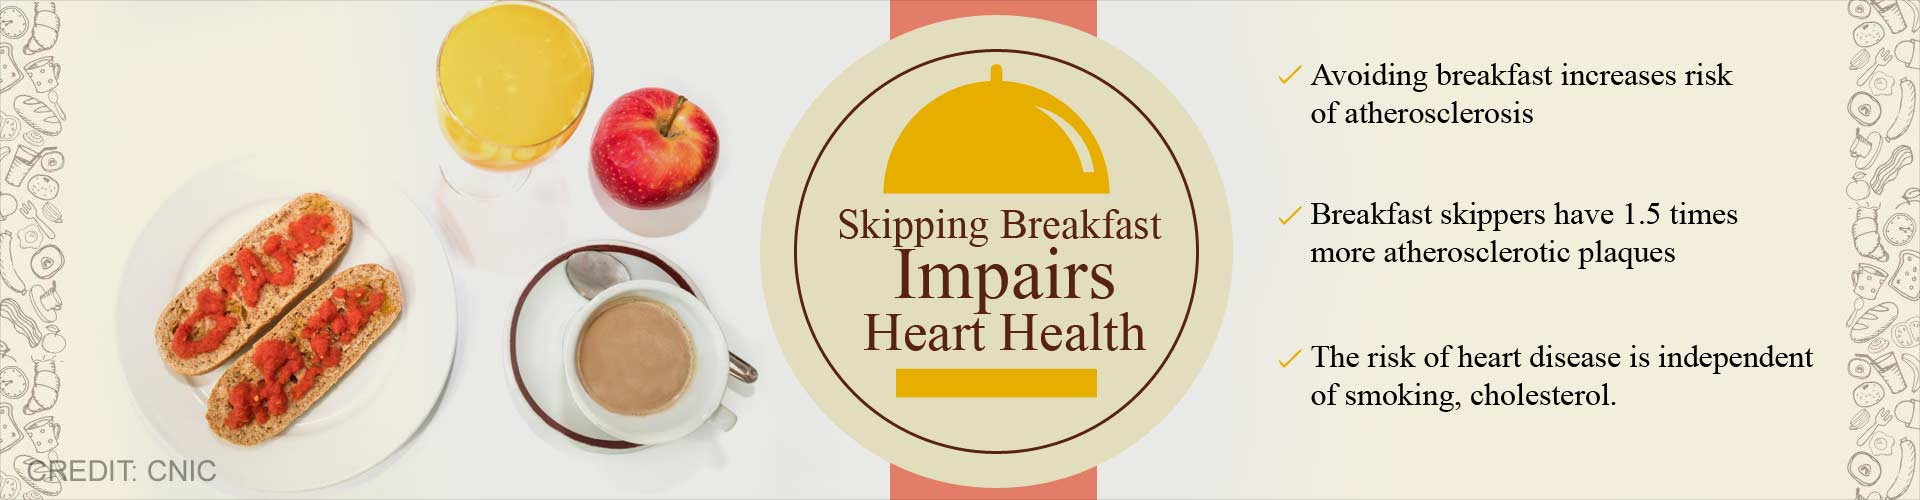 Skipping Breakfast or Eating Less Damages Heart Health